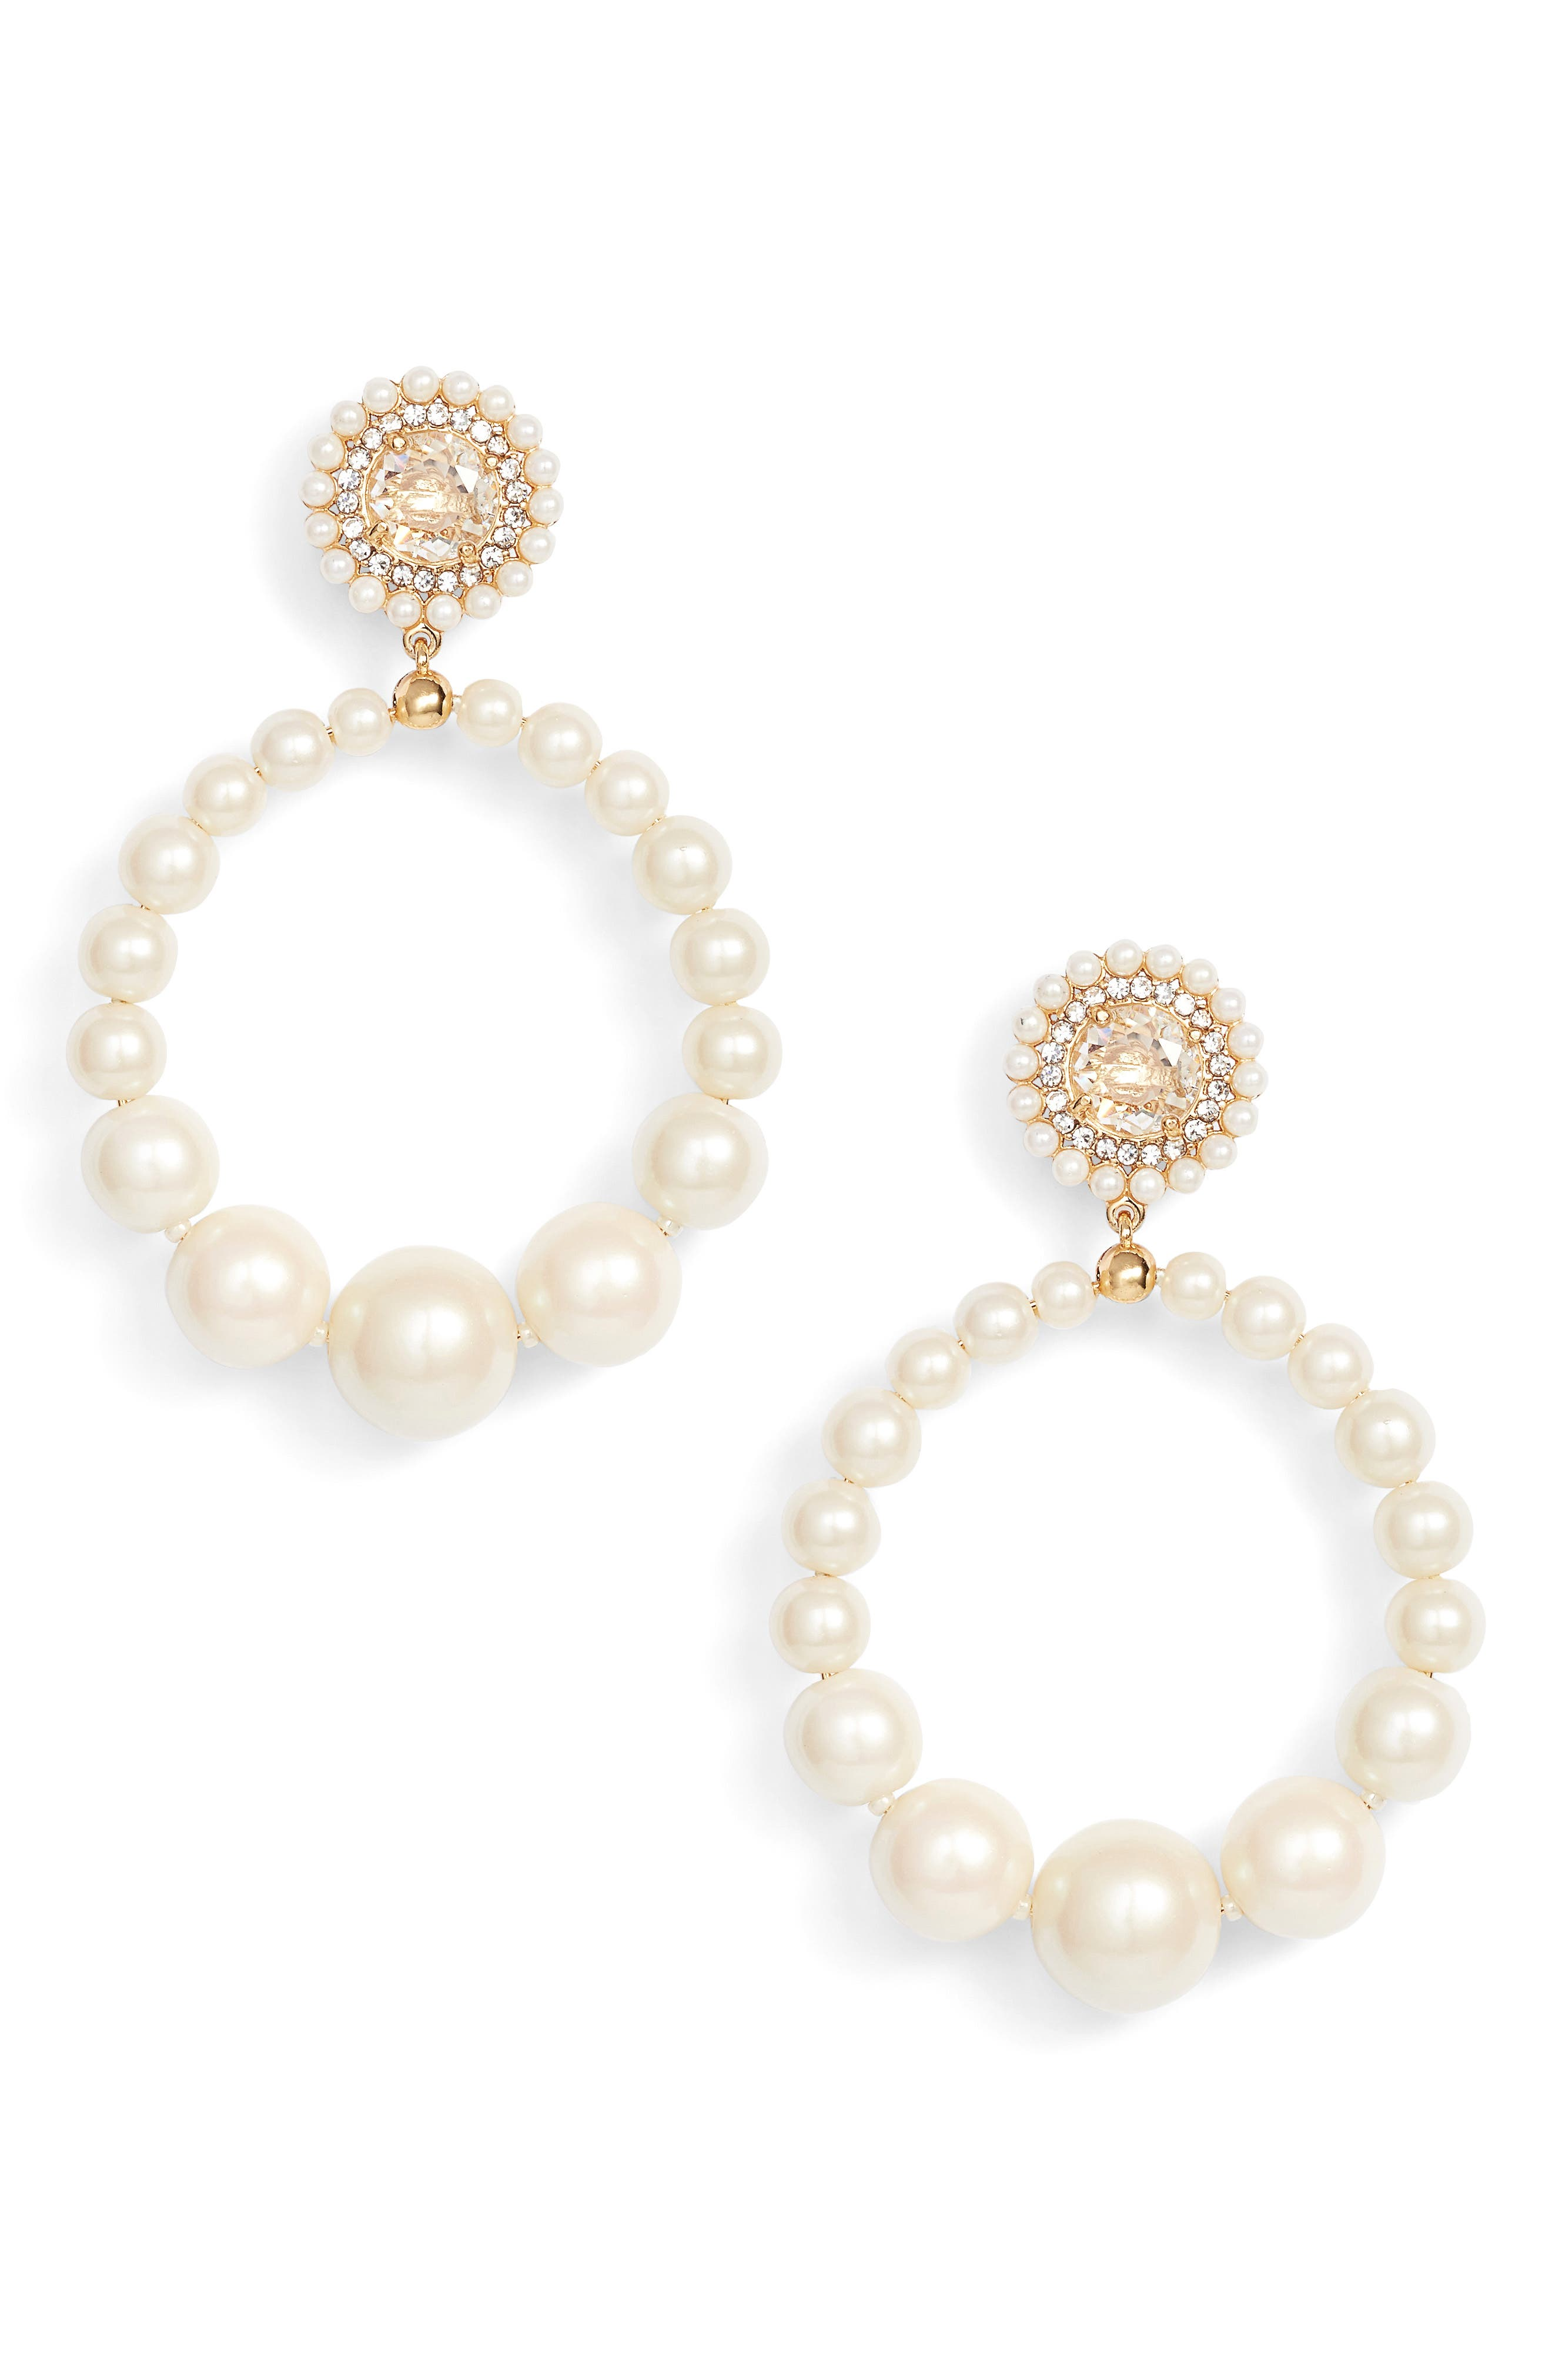 Main Image - kate spade new york imitation pearl frontal hoop earrings